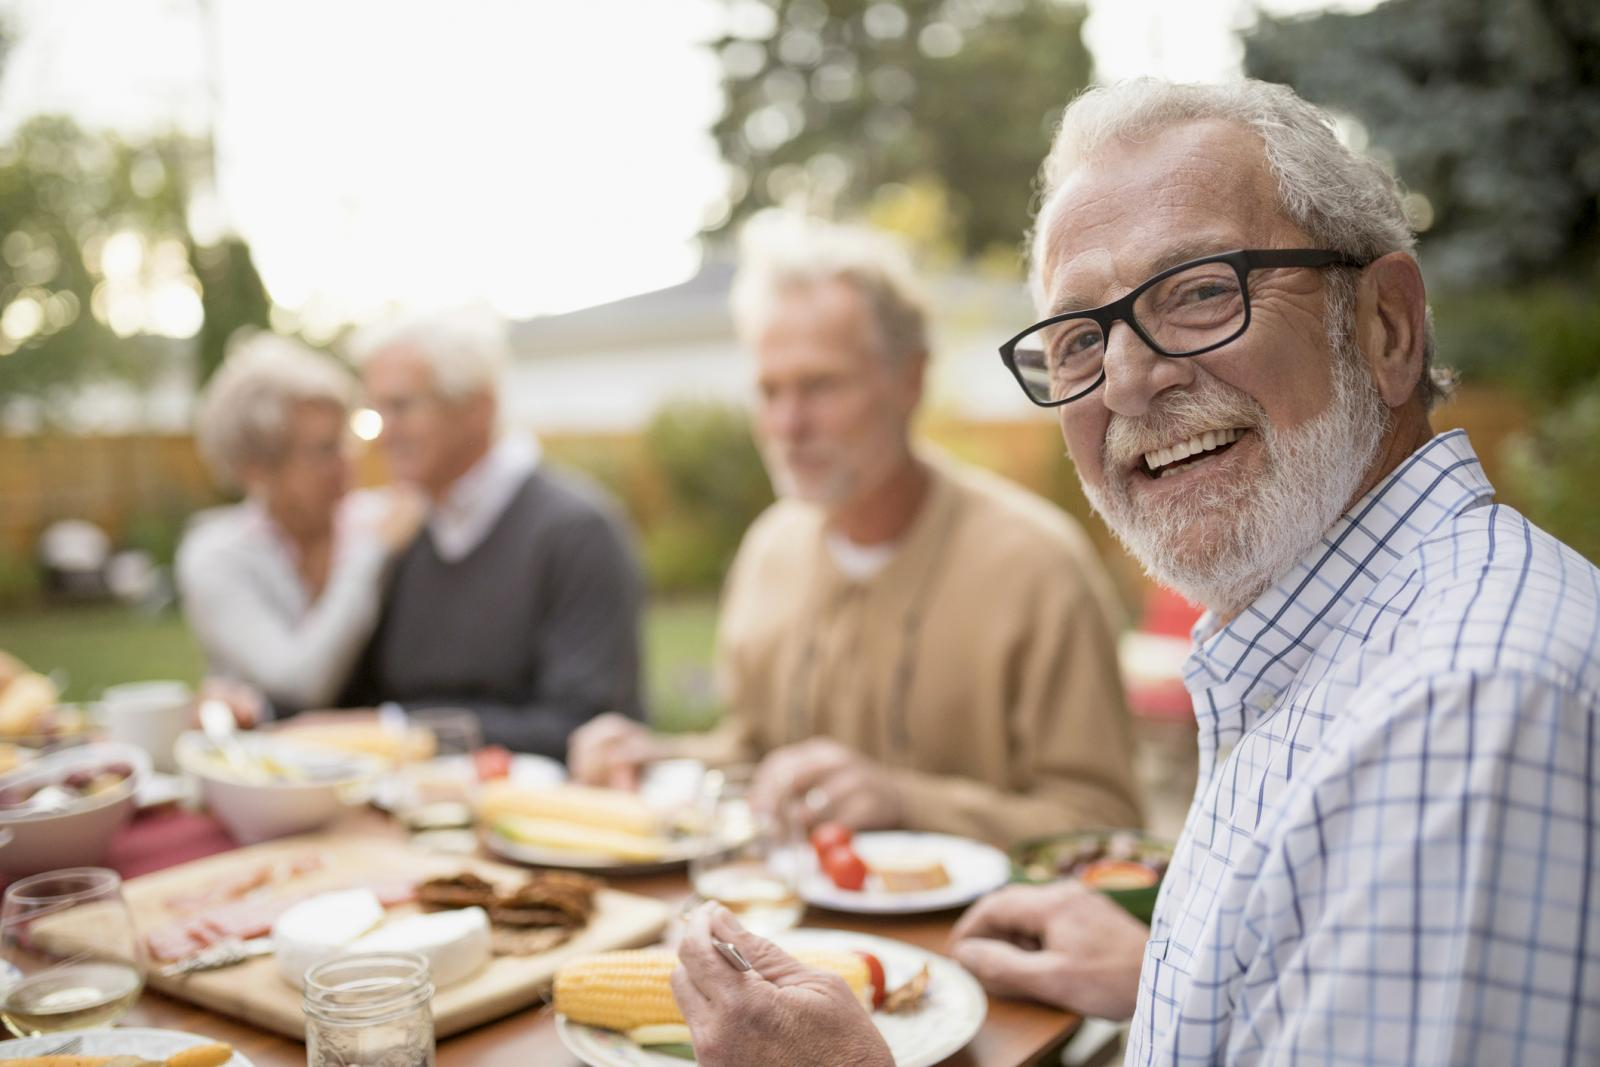 Smiling senior man enjoying garden party